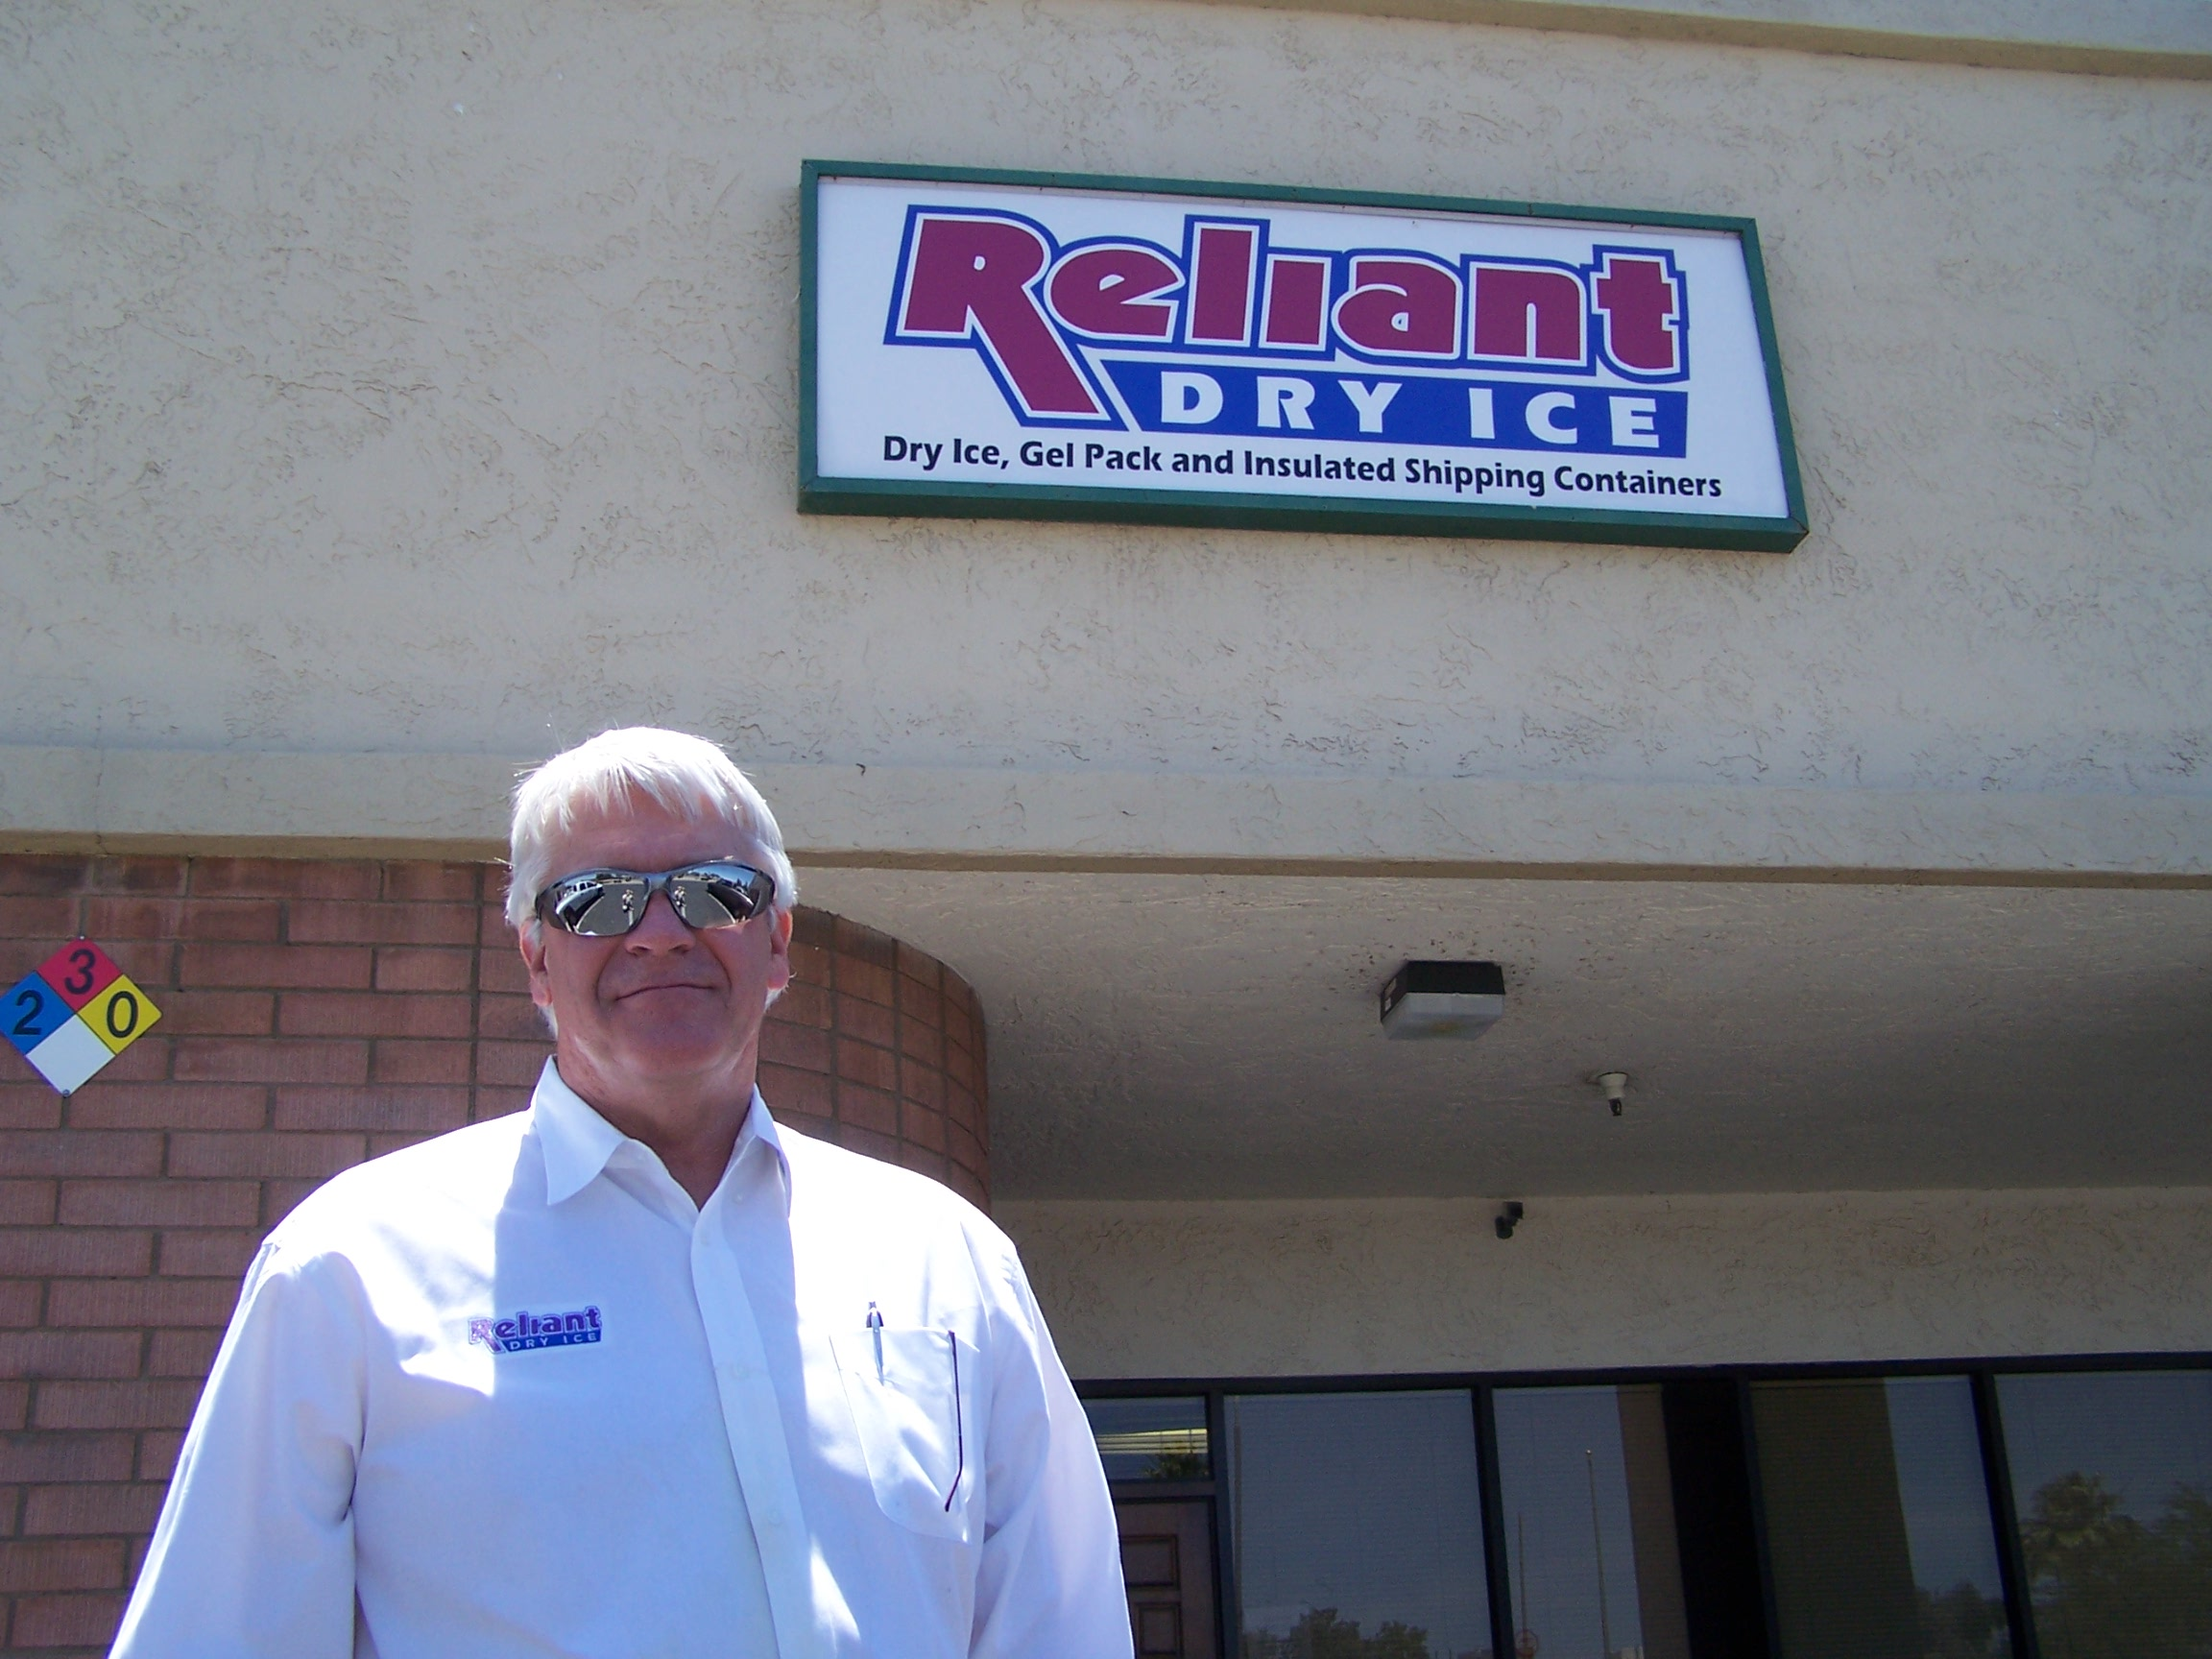 Reliant Holdings, Reliant Dry Ice acquisition